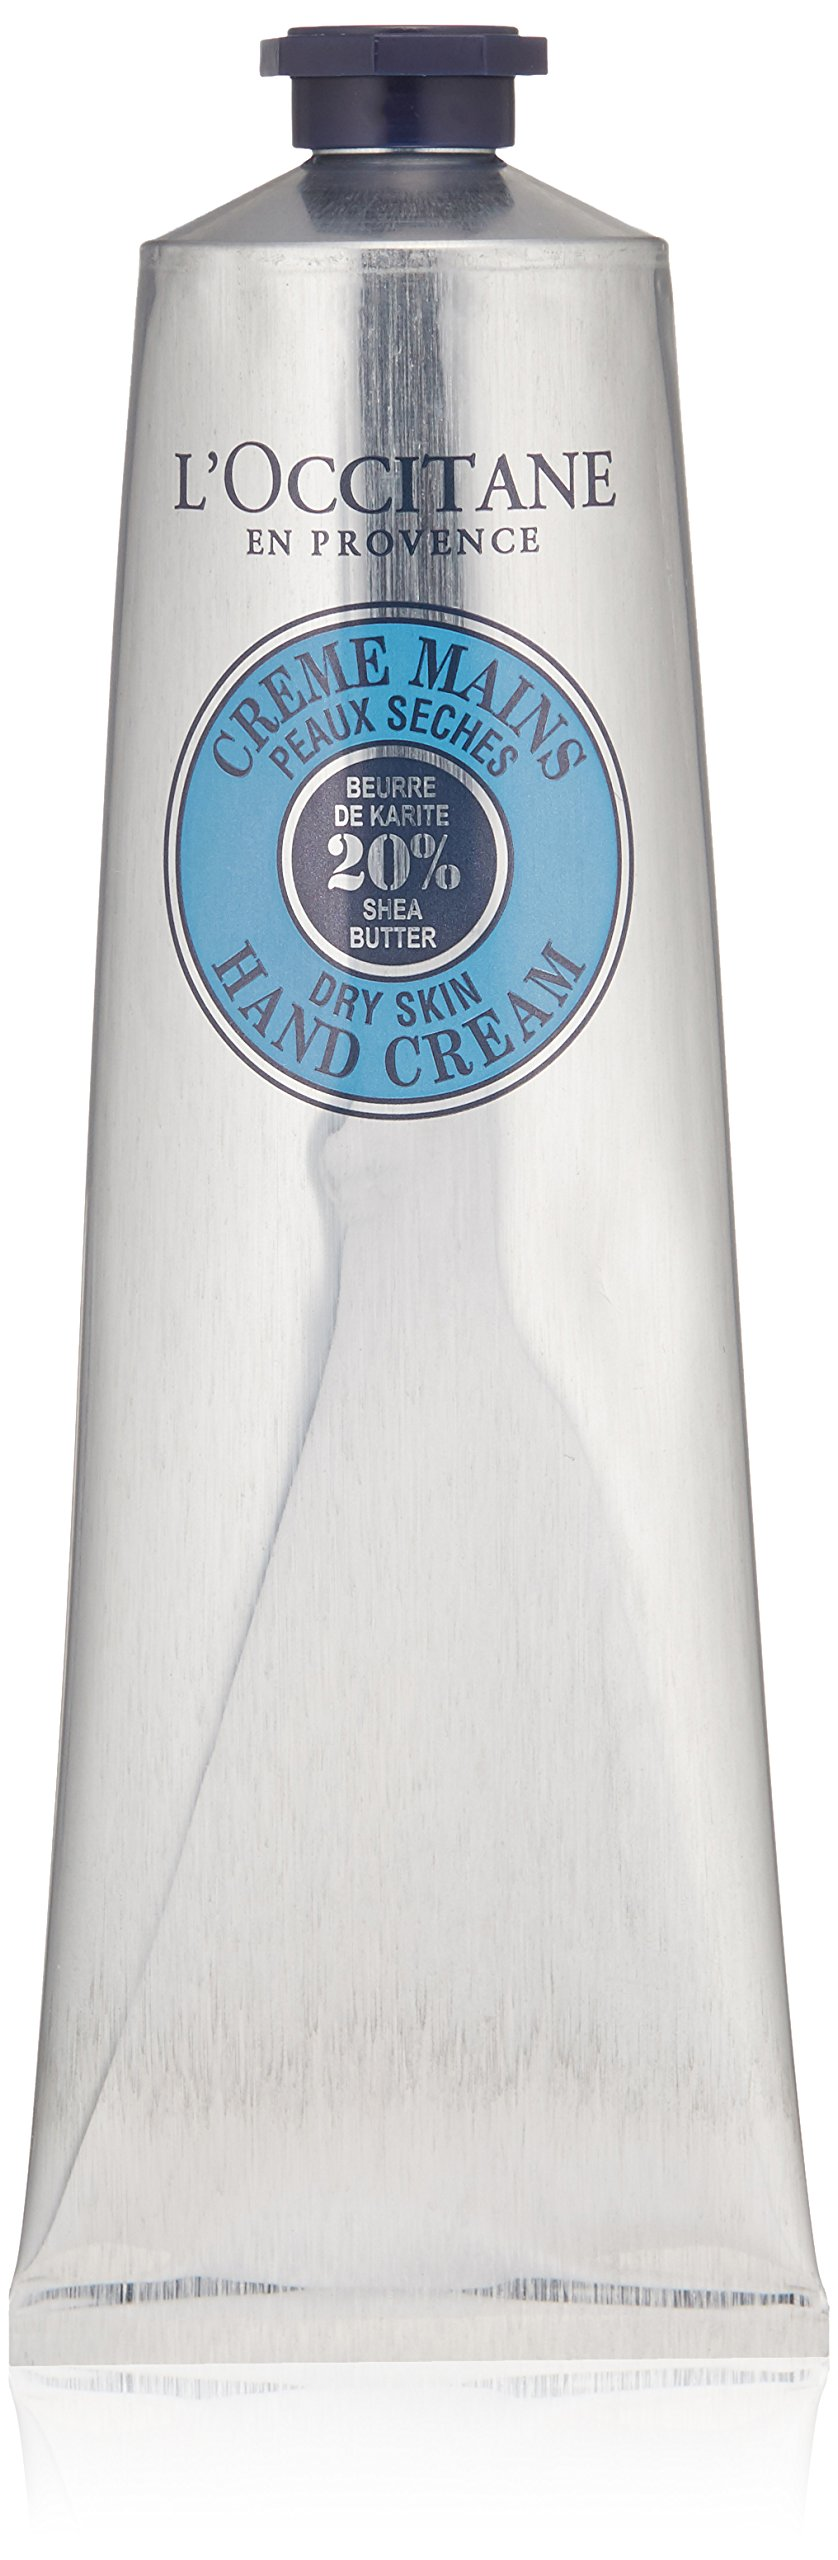 L'Occitane Fast-Absorbing 20% Shea Butter Hand Cream, 5.2 oz.